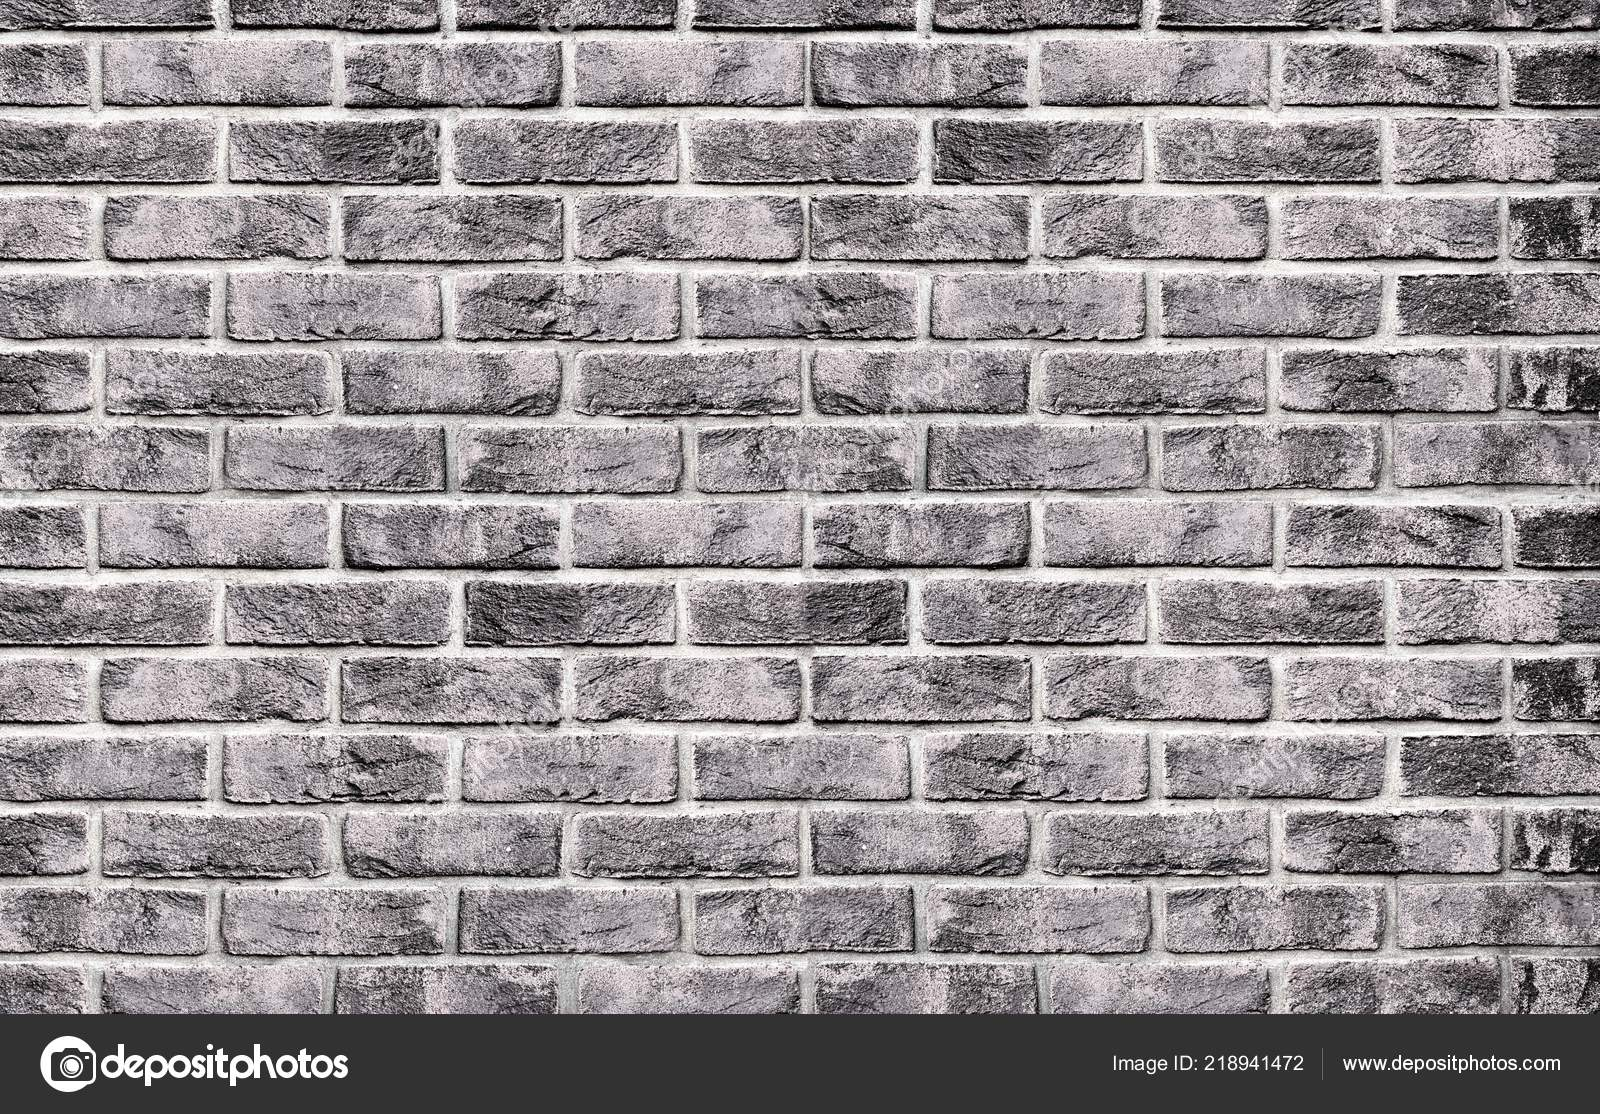 Black and white brick wall background texture from bricks old vintage brick background